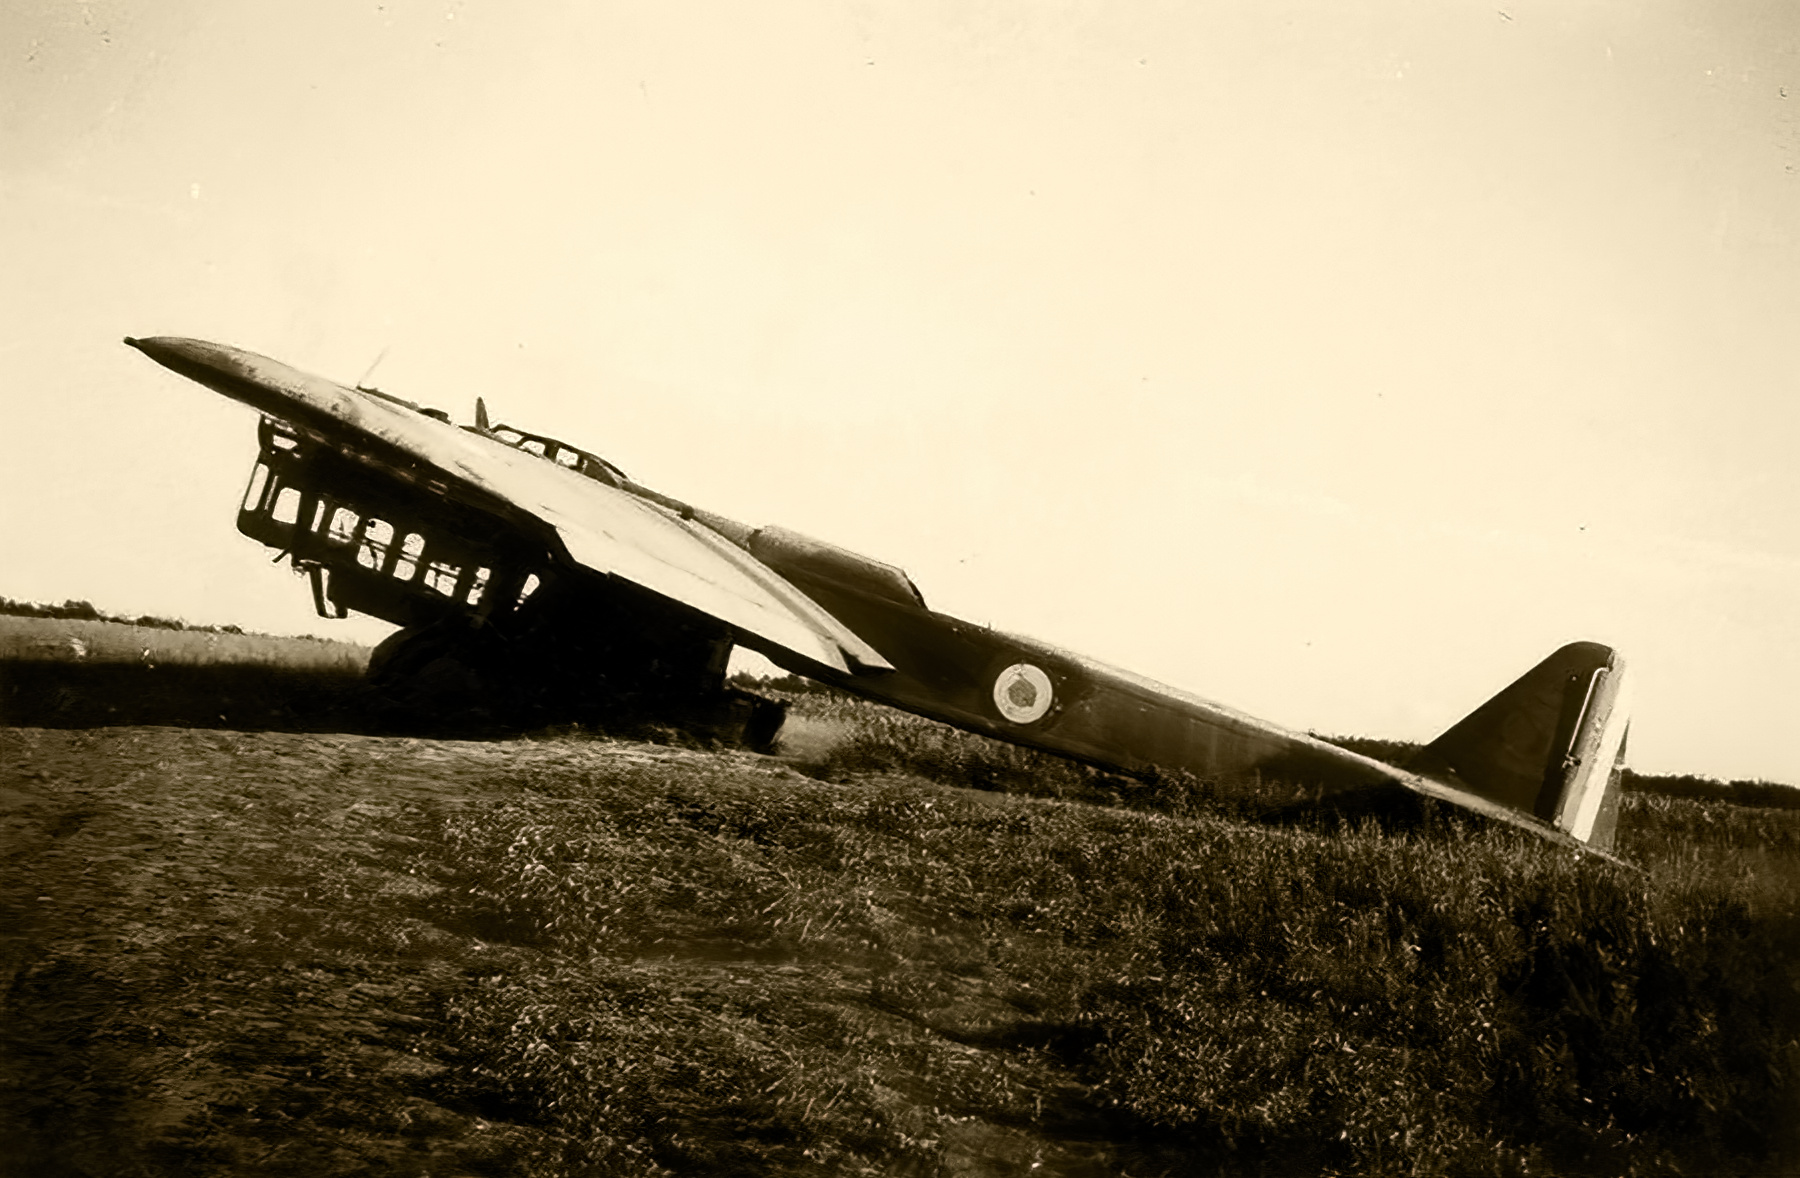 French Airforce Amiot 143 sits abandoned after the fall of France June 1940 ebay 03